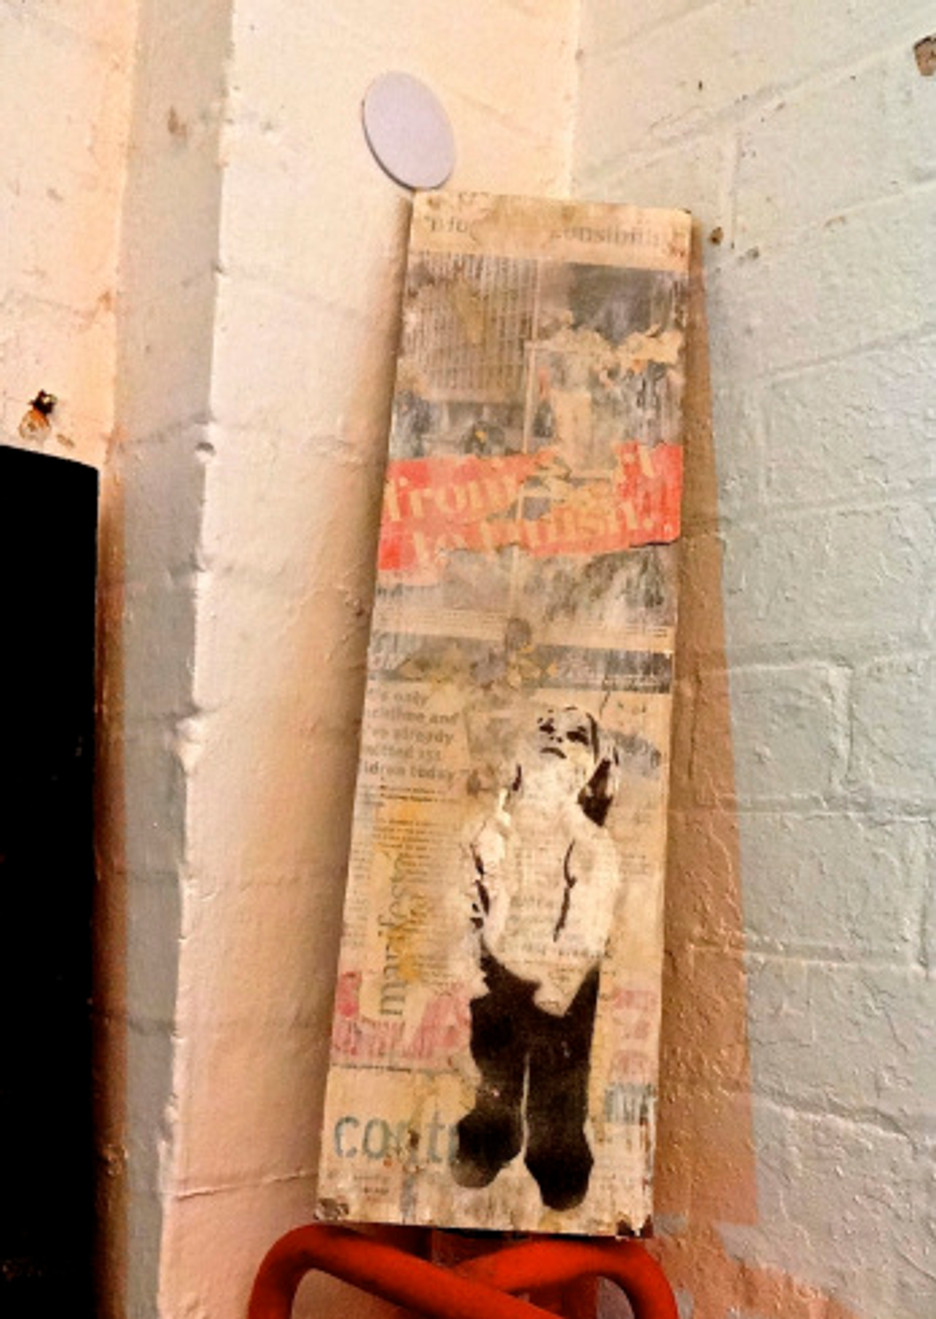 """Our original Mark Fitz piece from his show - """"Girl Looking Up"""" made on reclaimed wood with newspaper collage background. It is going to look fantastic here in our home in Portland!"""